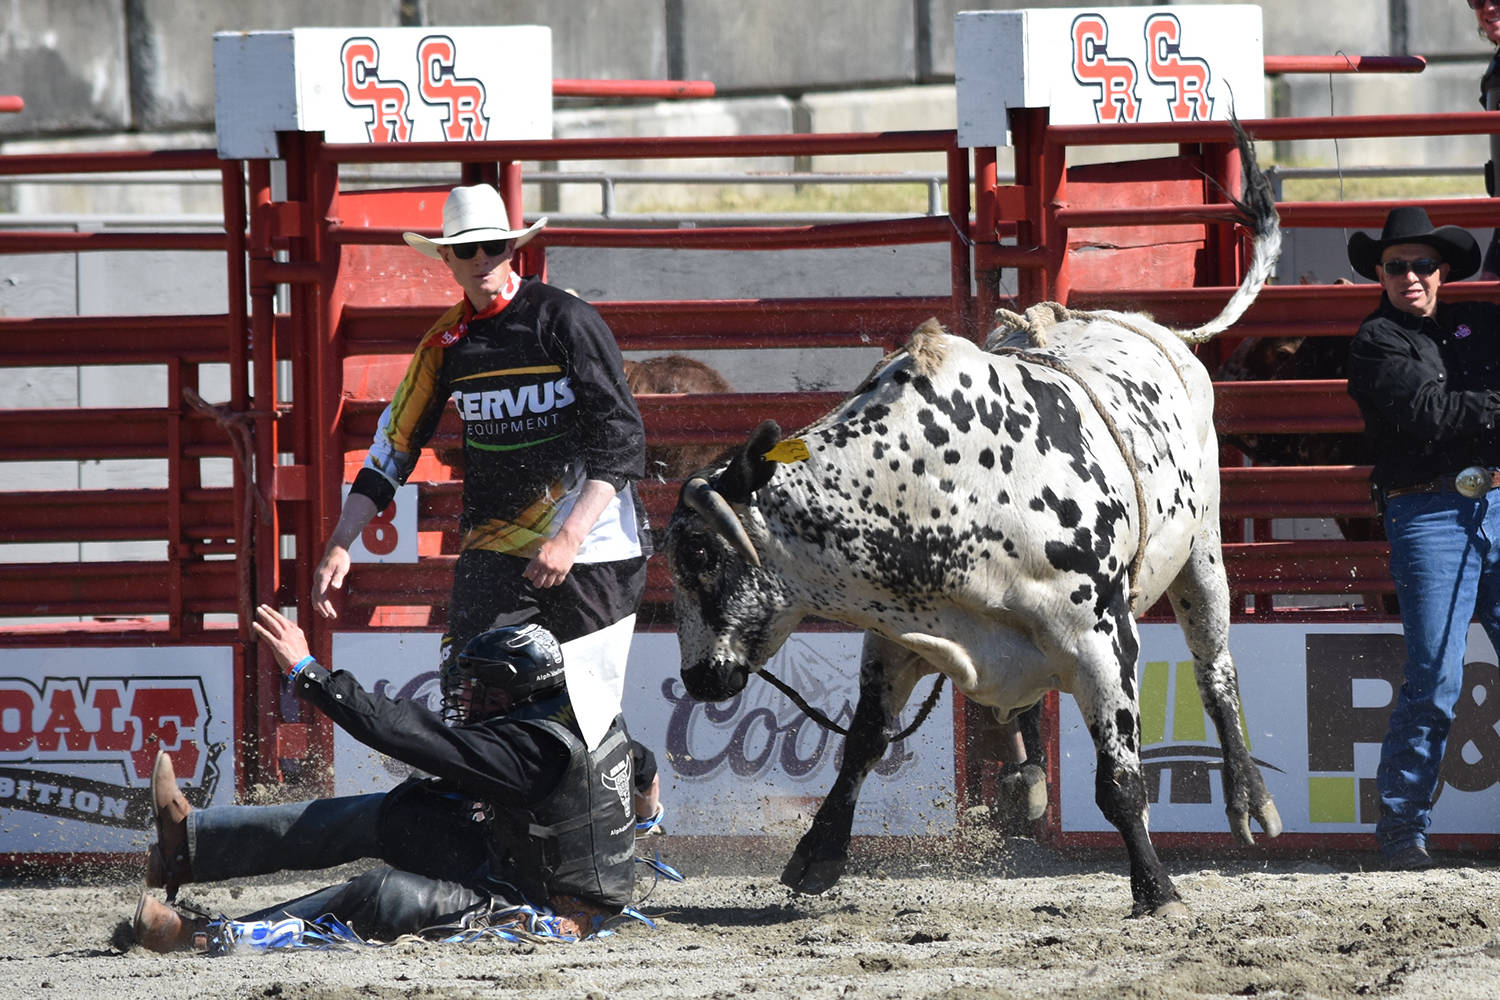 Bullfighter Scott Waye will be coming back to the Cloverdale Rodeo for his third year in 2018. (Grace Kennedy photo)